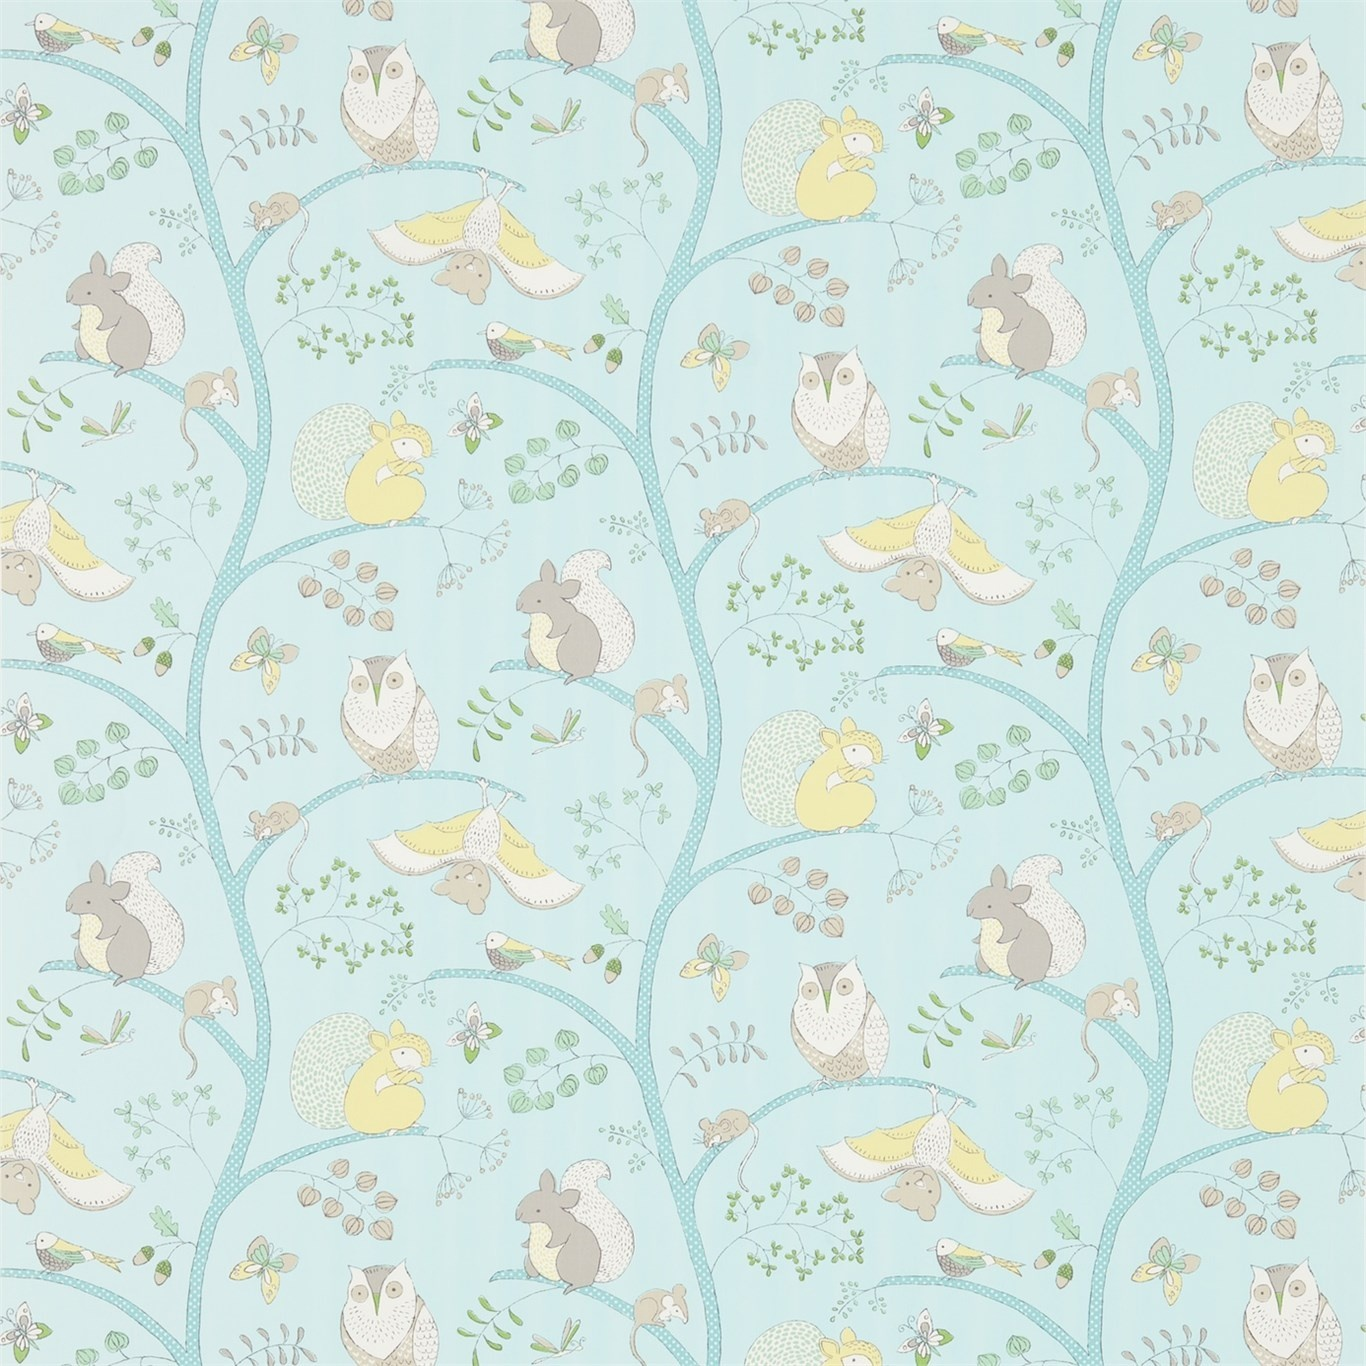 Image of Sanderson Going Batty Sky Blue/Buttercup Fabric 223900